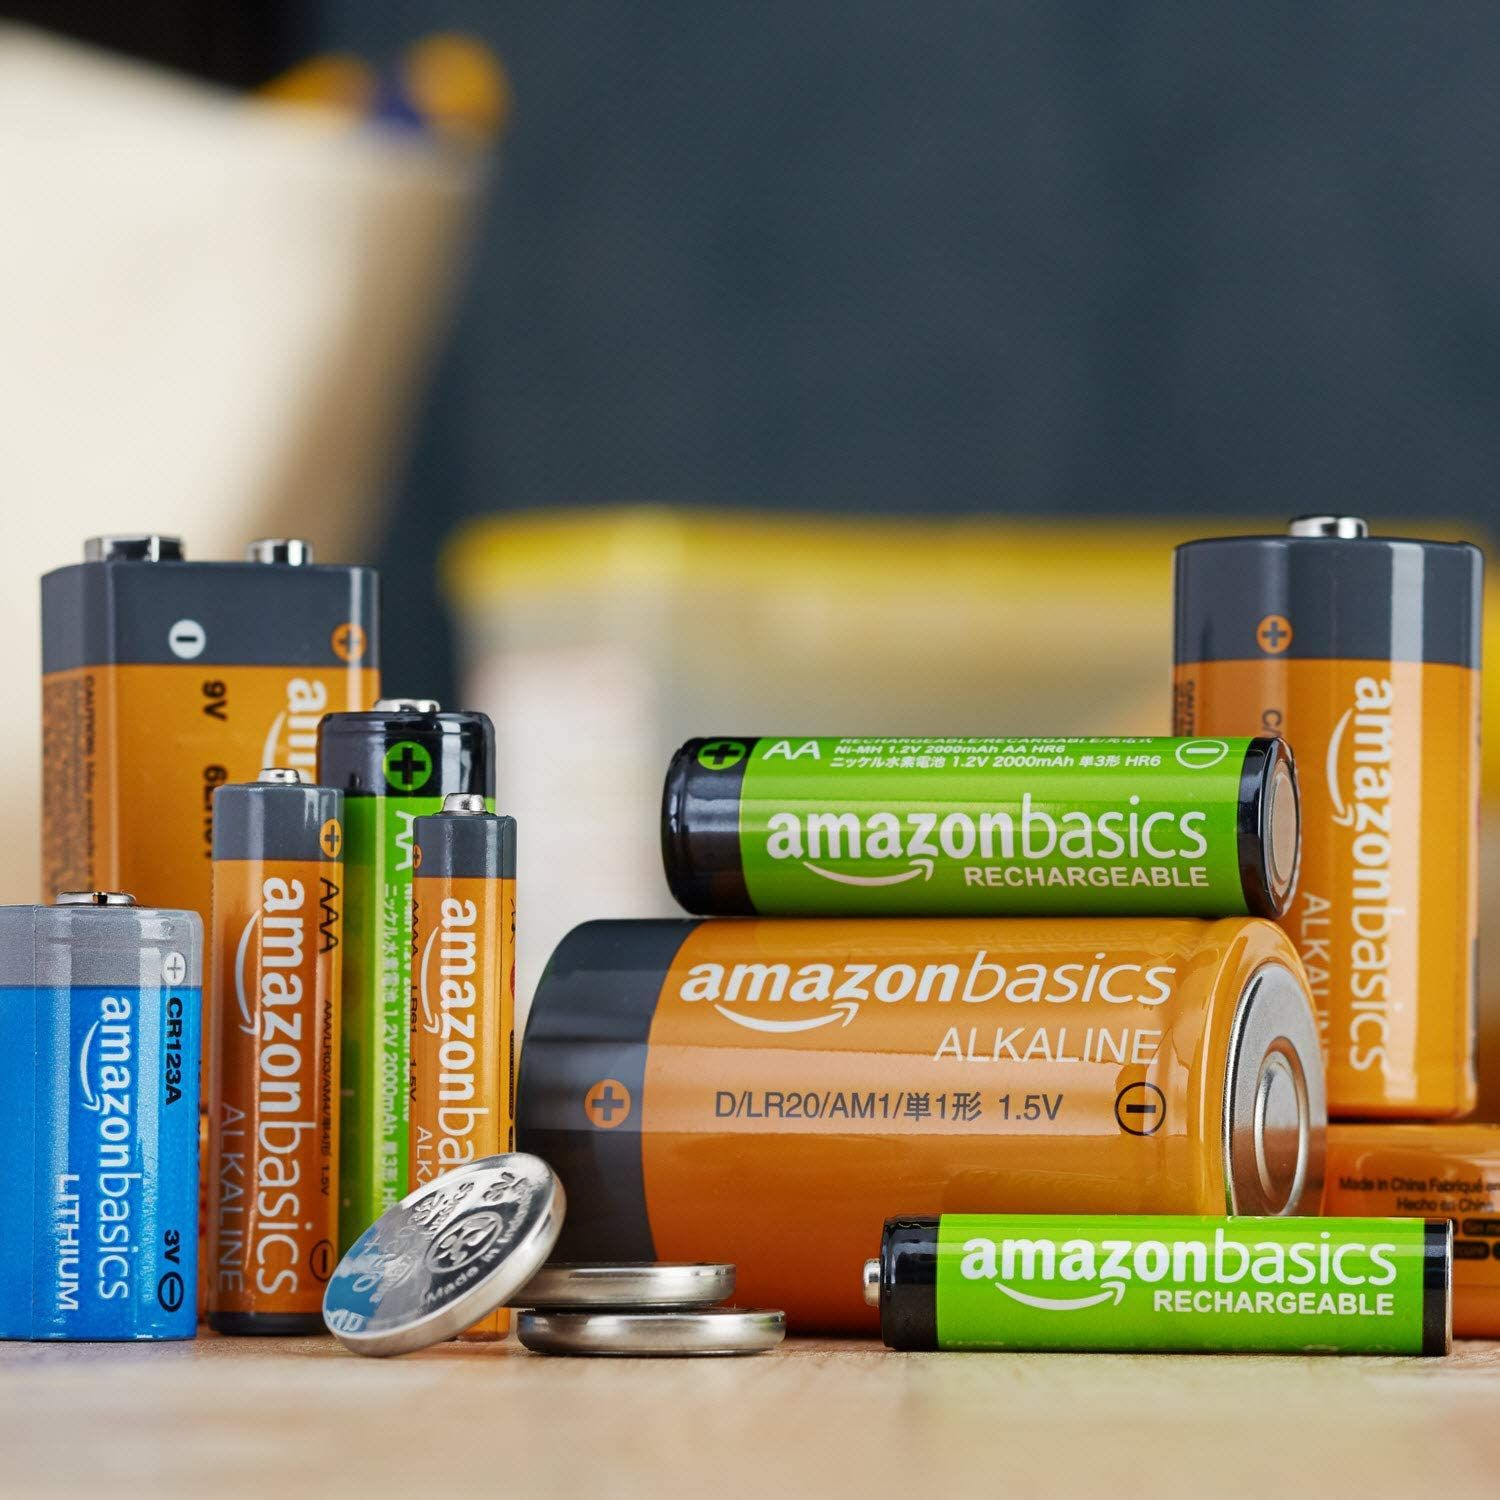 Price 13 49 Best Amazonbasics Aaa Rechargeable Batteries 800 Mah Pre Charged Alkaline Battery Rechargeable Batteries Battery Pack